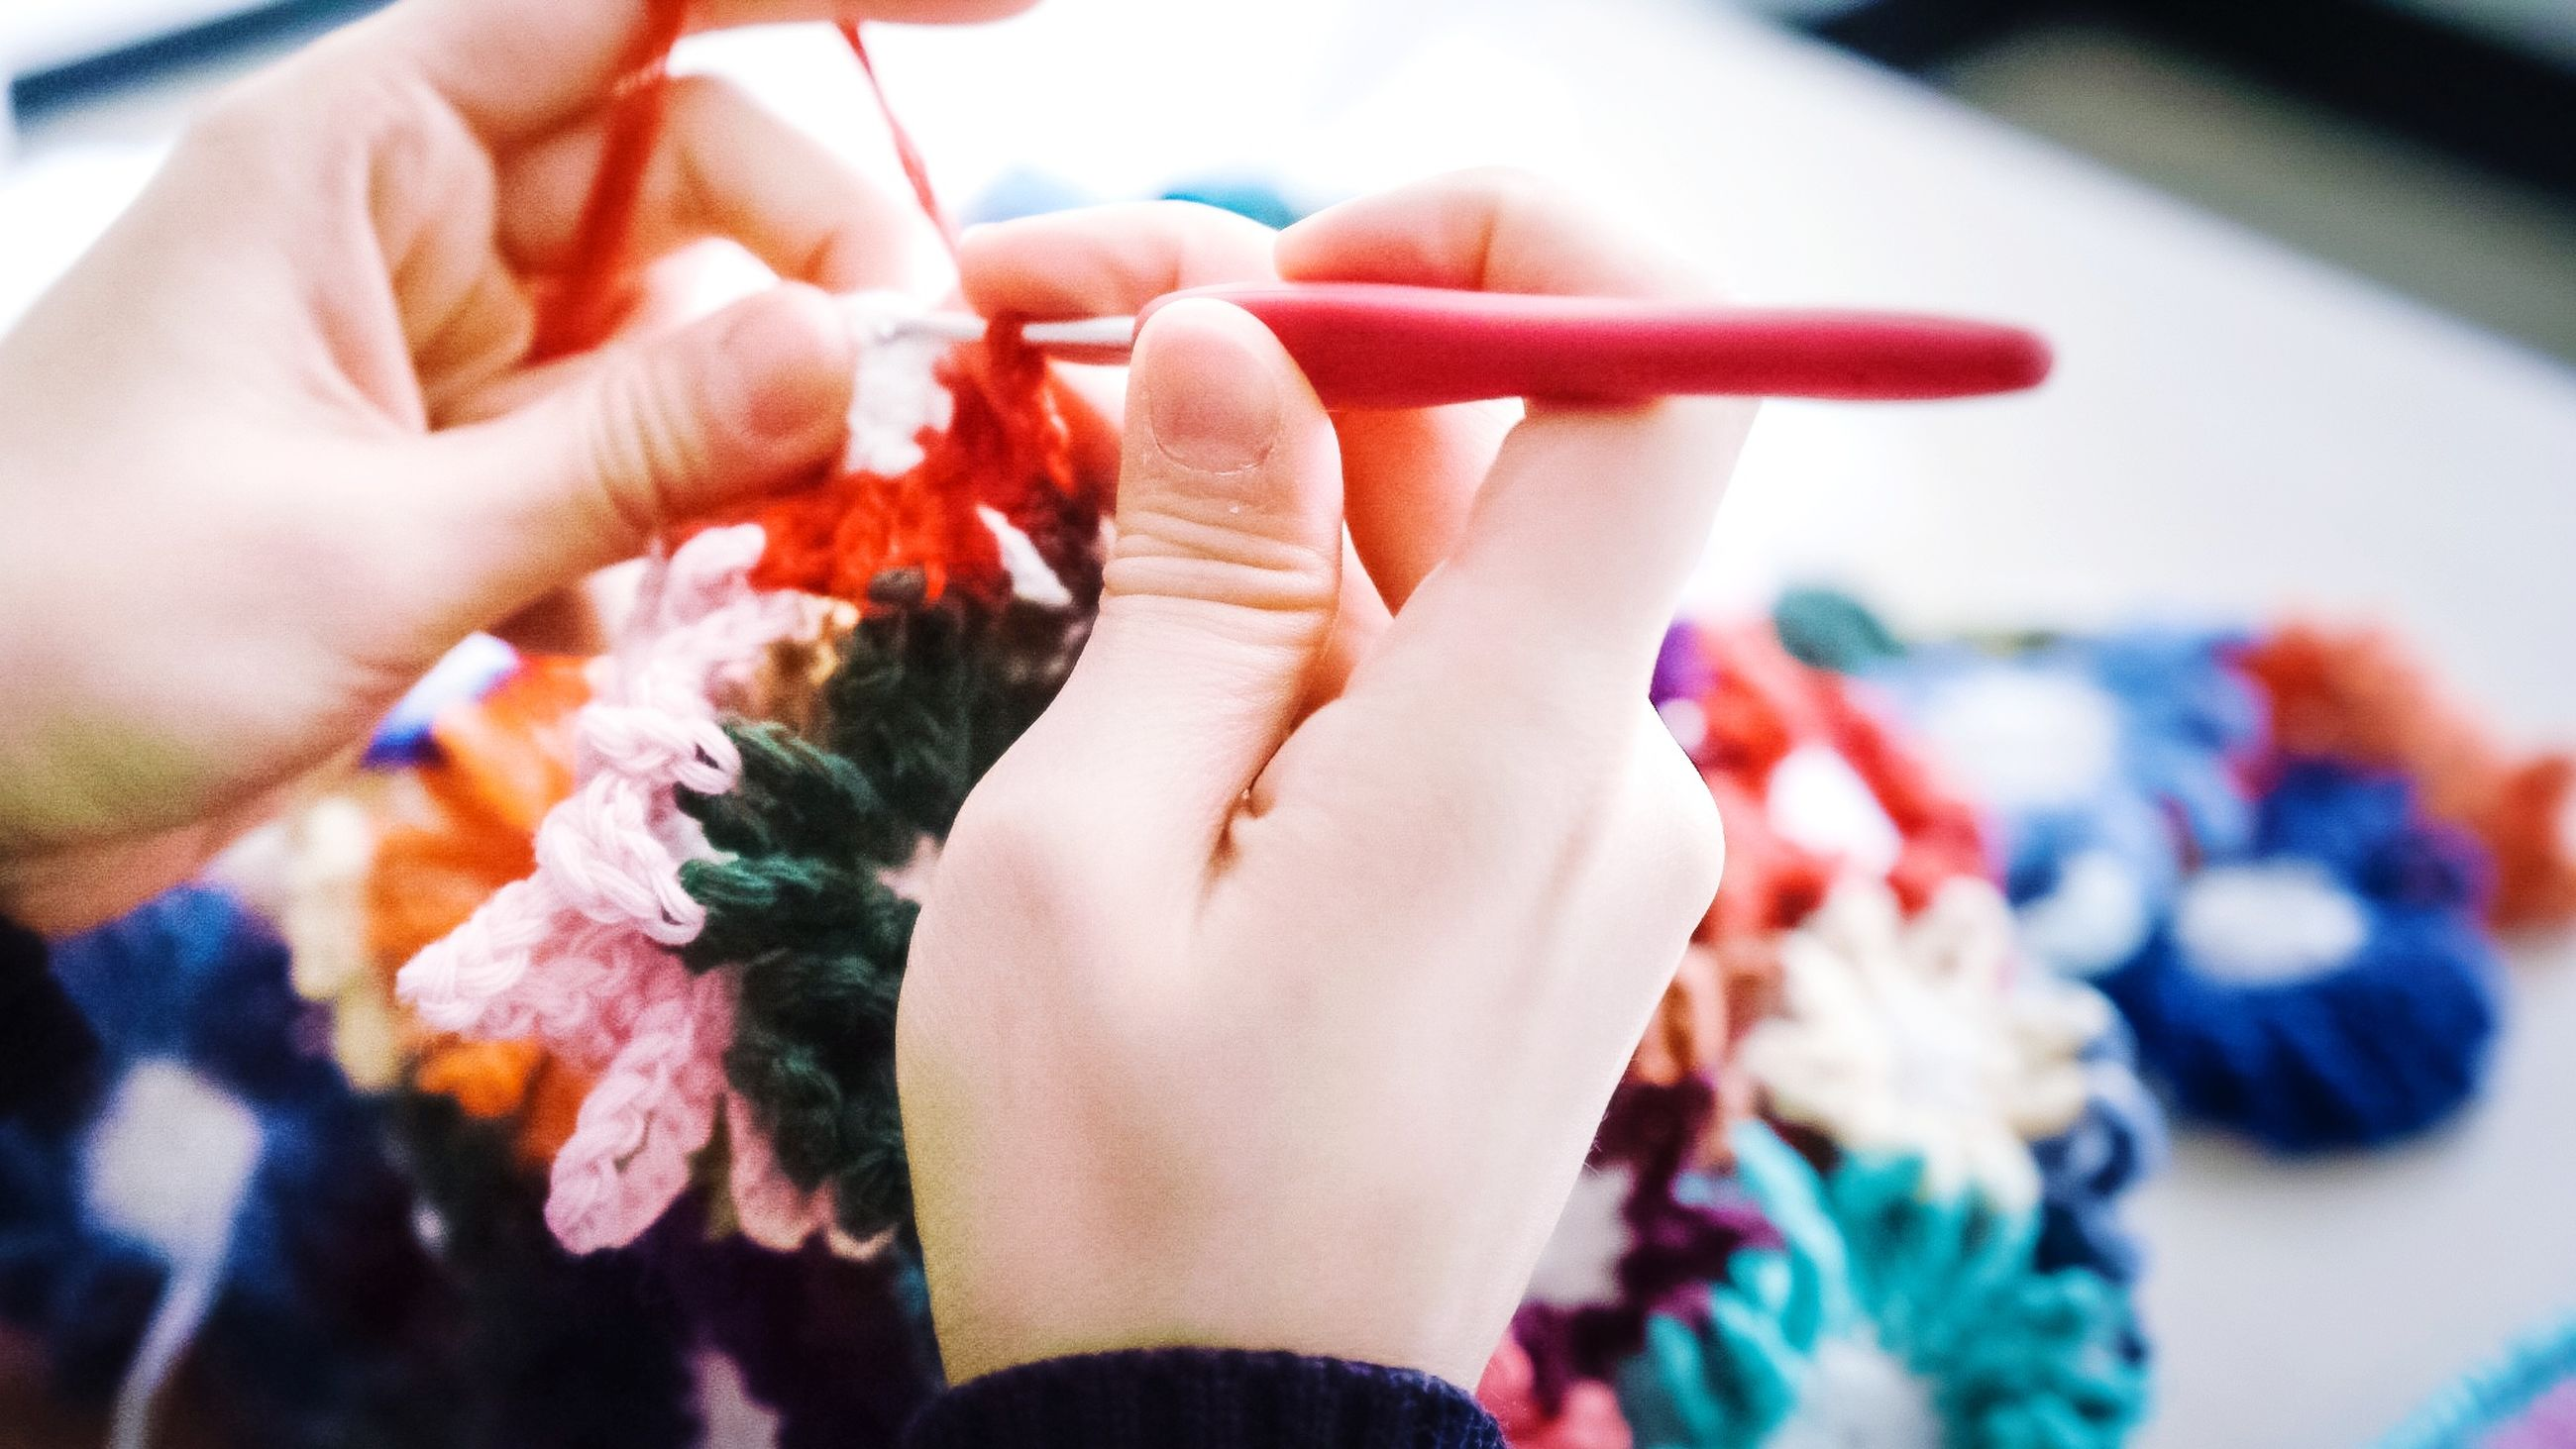 human hand, hand, human body part, wool, holding, real people, indoors, one person, art and craft, close-up, knitting, creativity, skill, selective focus, craft, body part, leisure activity, lifestyles, adult, finger, human limb